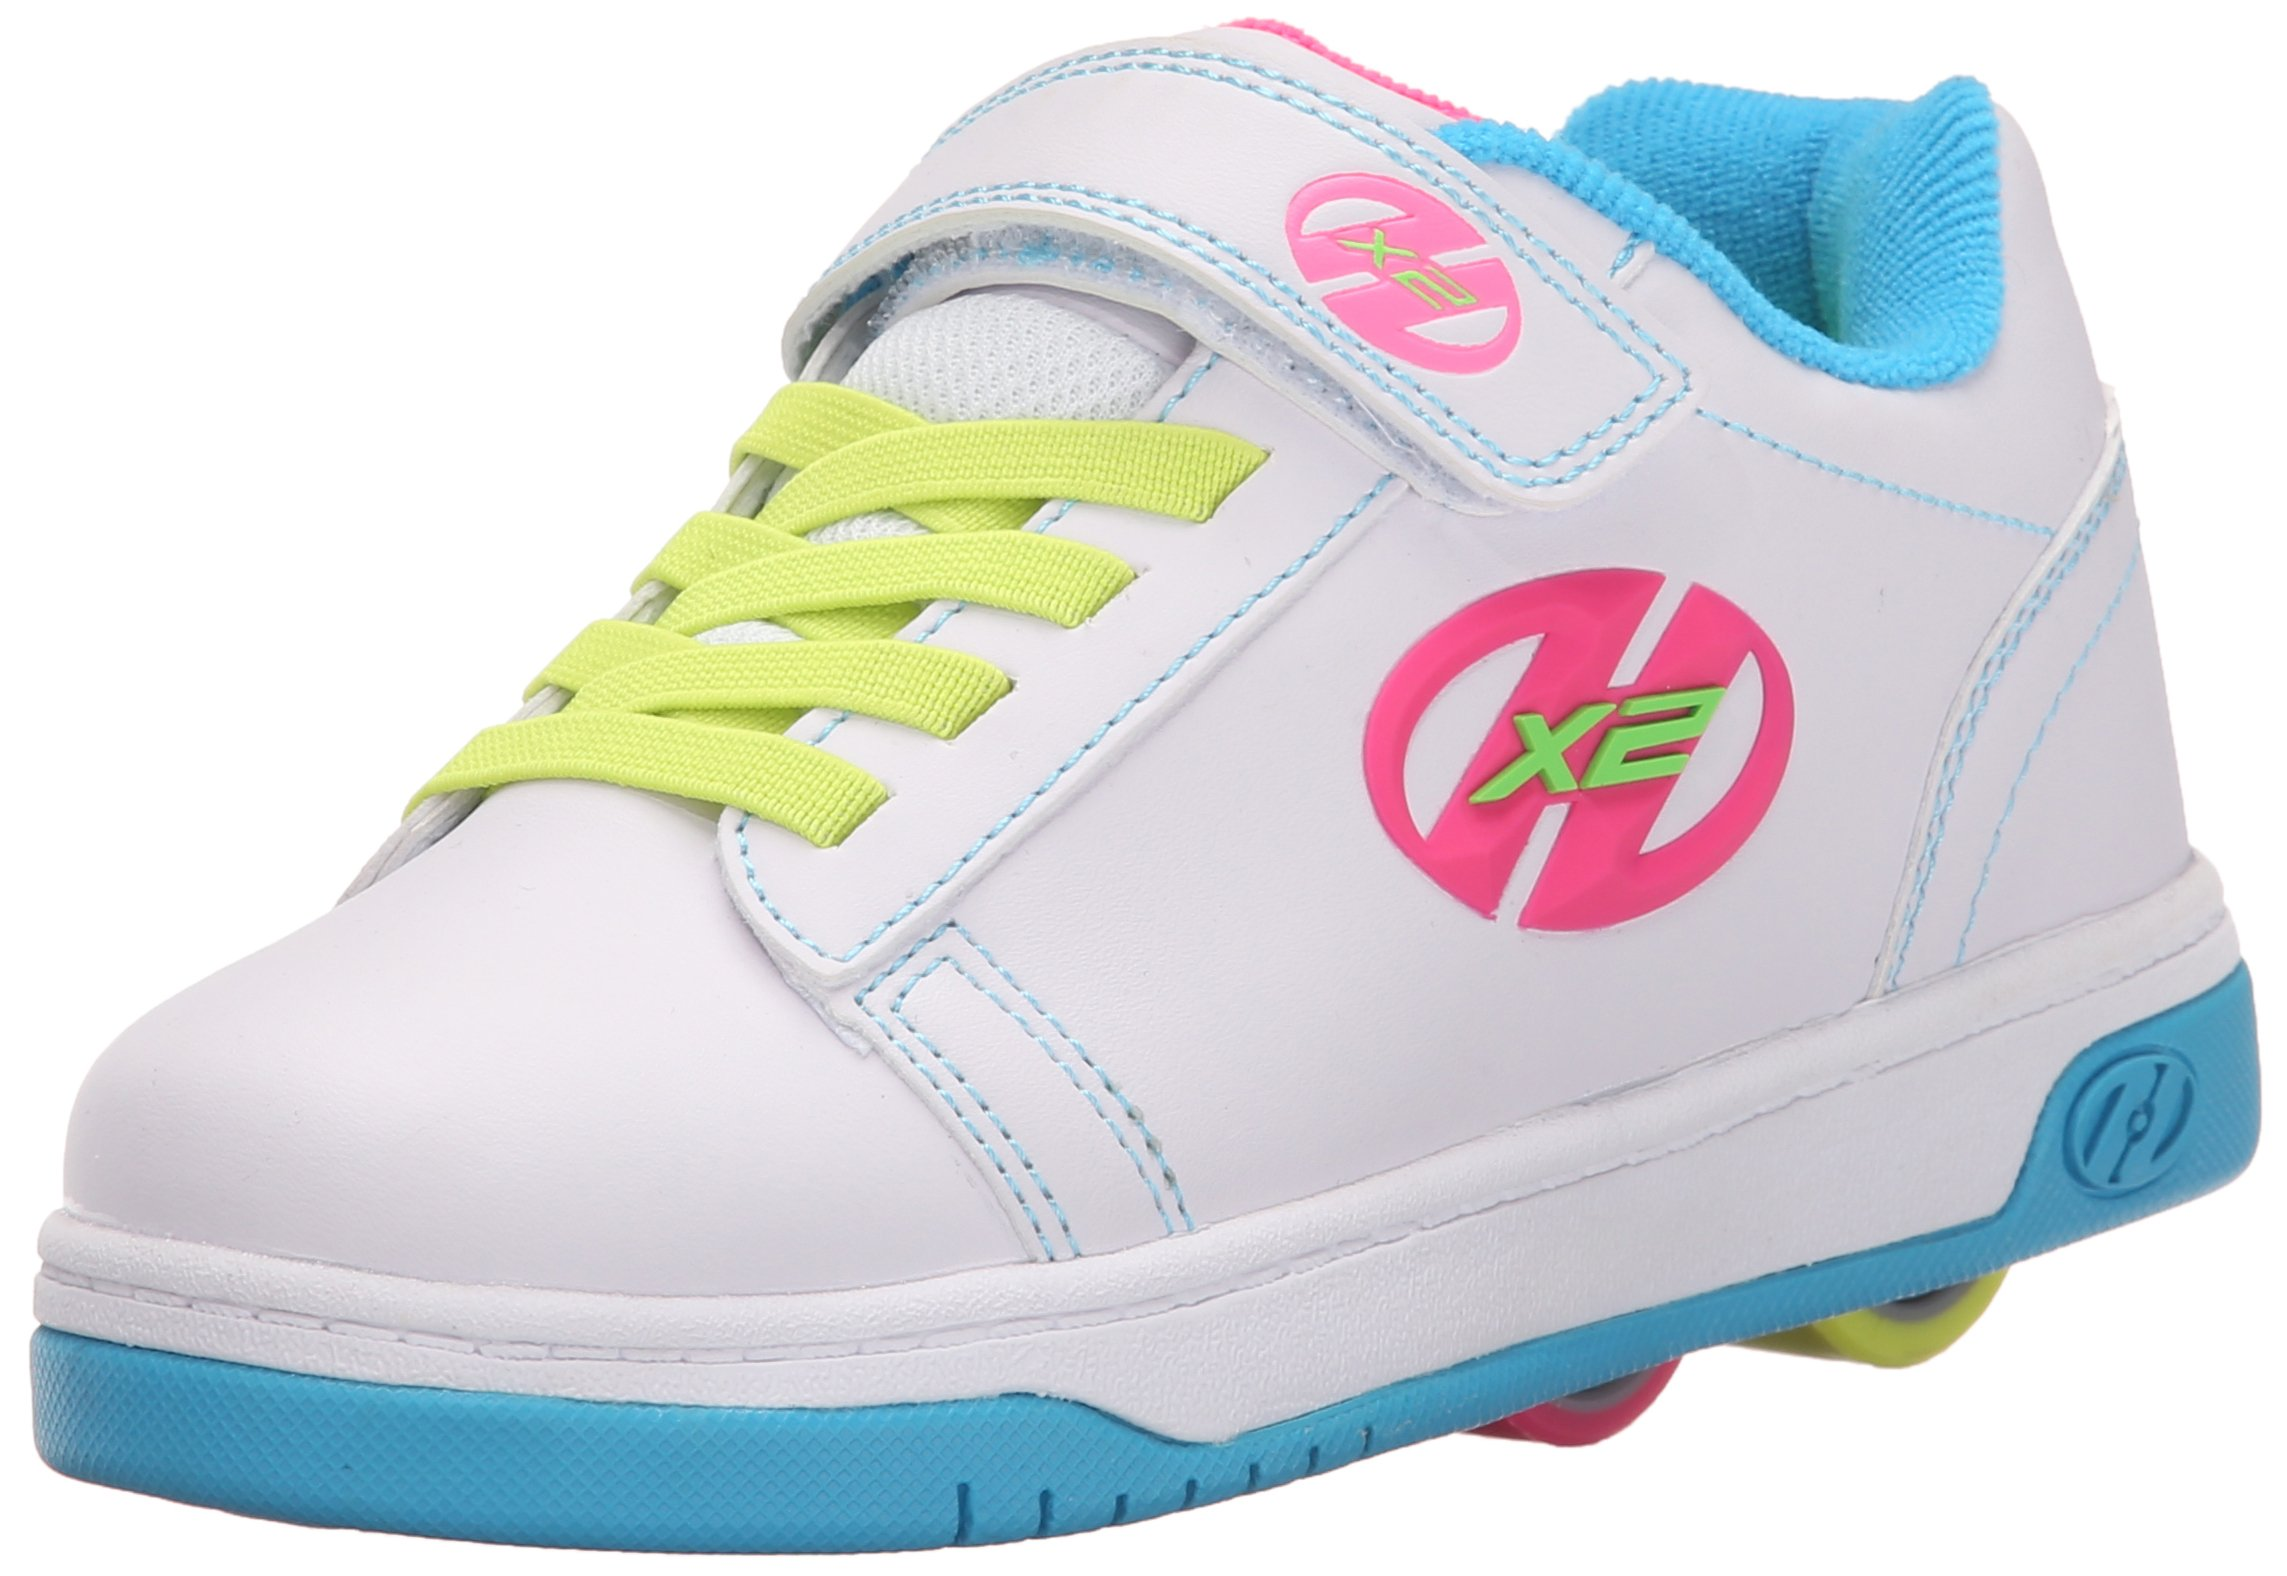 Heelys Dual Up X2 PU Sneaker (Little Kid/Big Kid), White/Neon Multi, 13 M US Little Kid